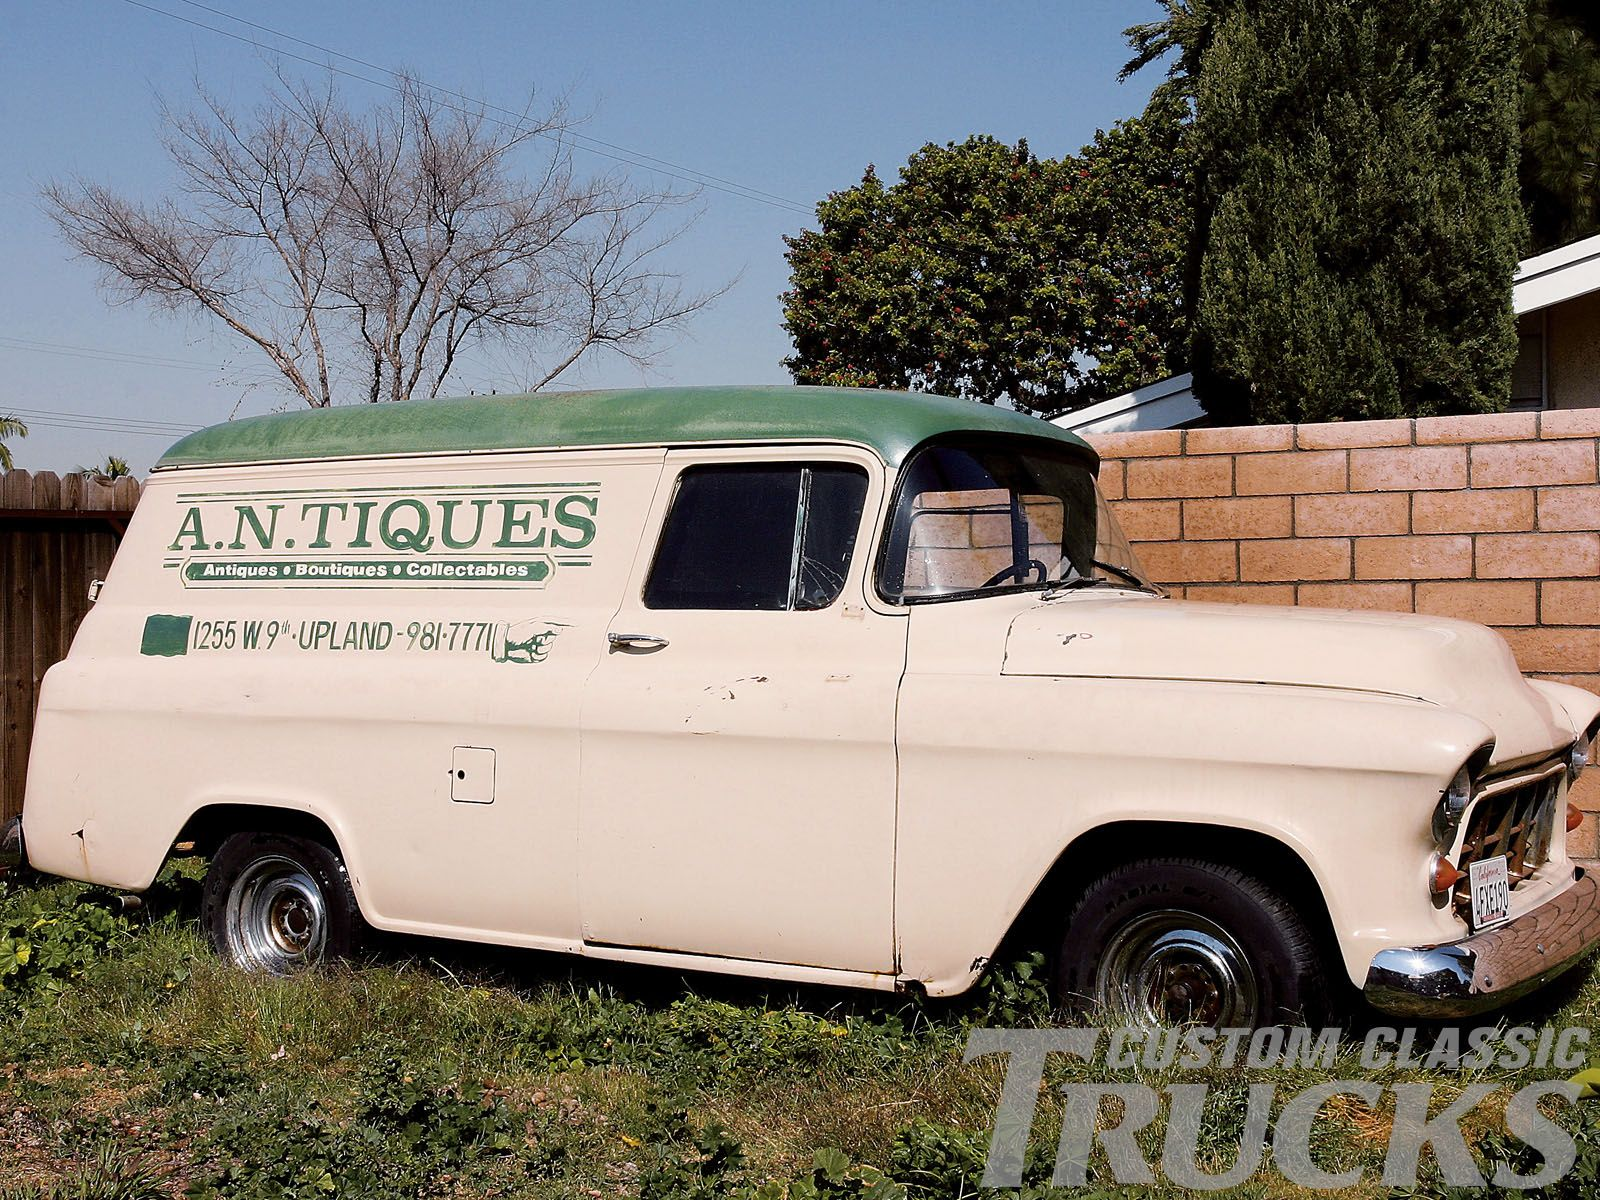 Pin by Jim Johnson on Vintage Truck Signs   Pinterest   Truck ...